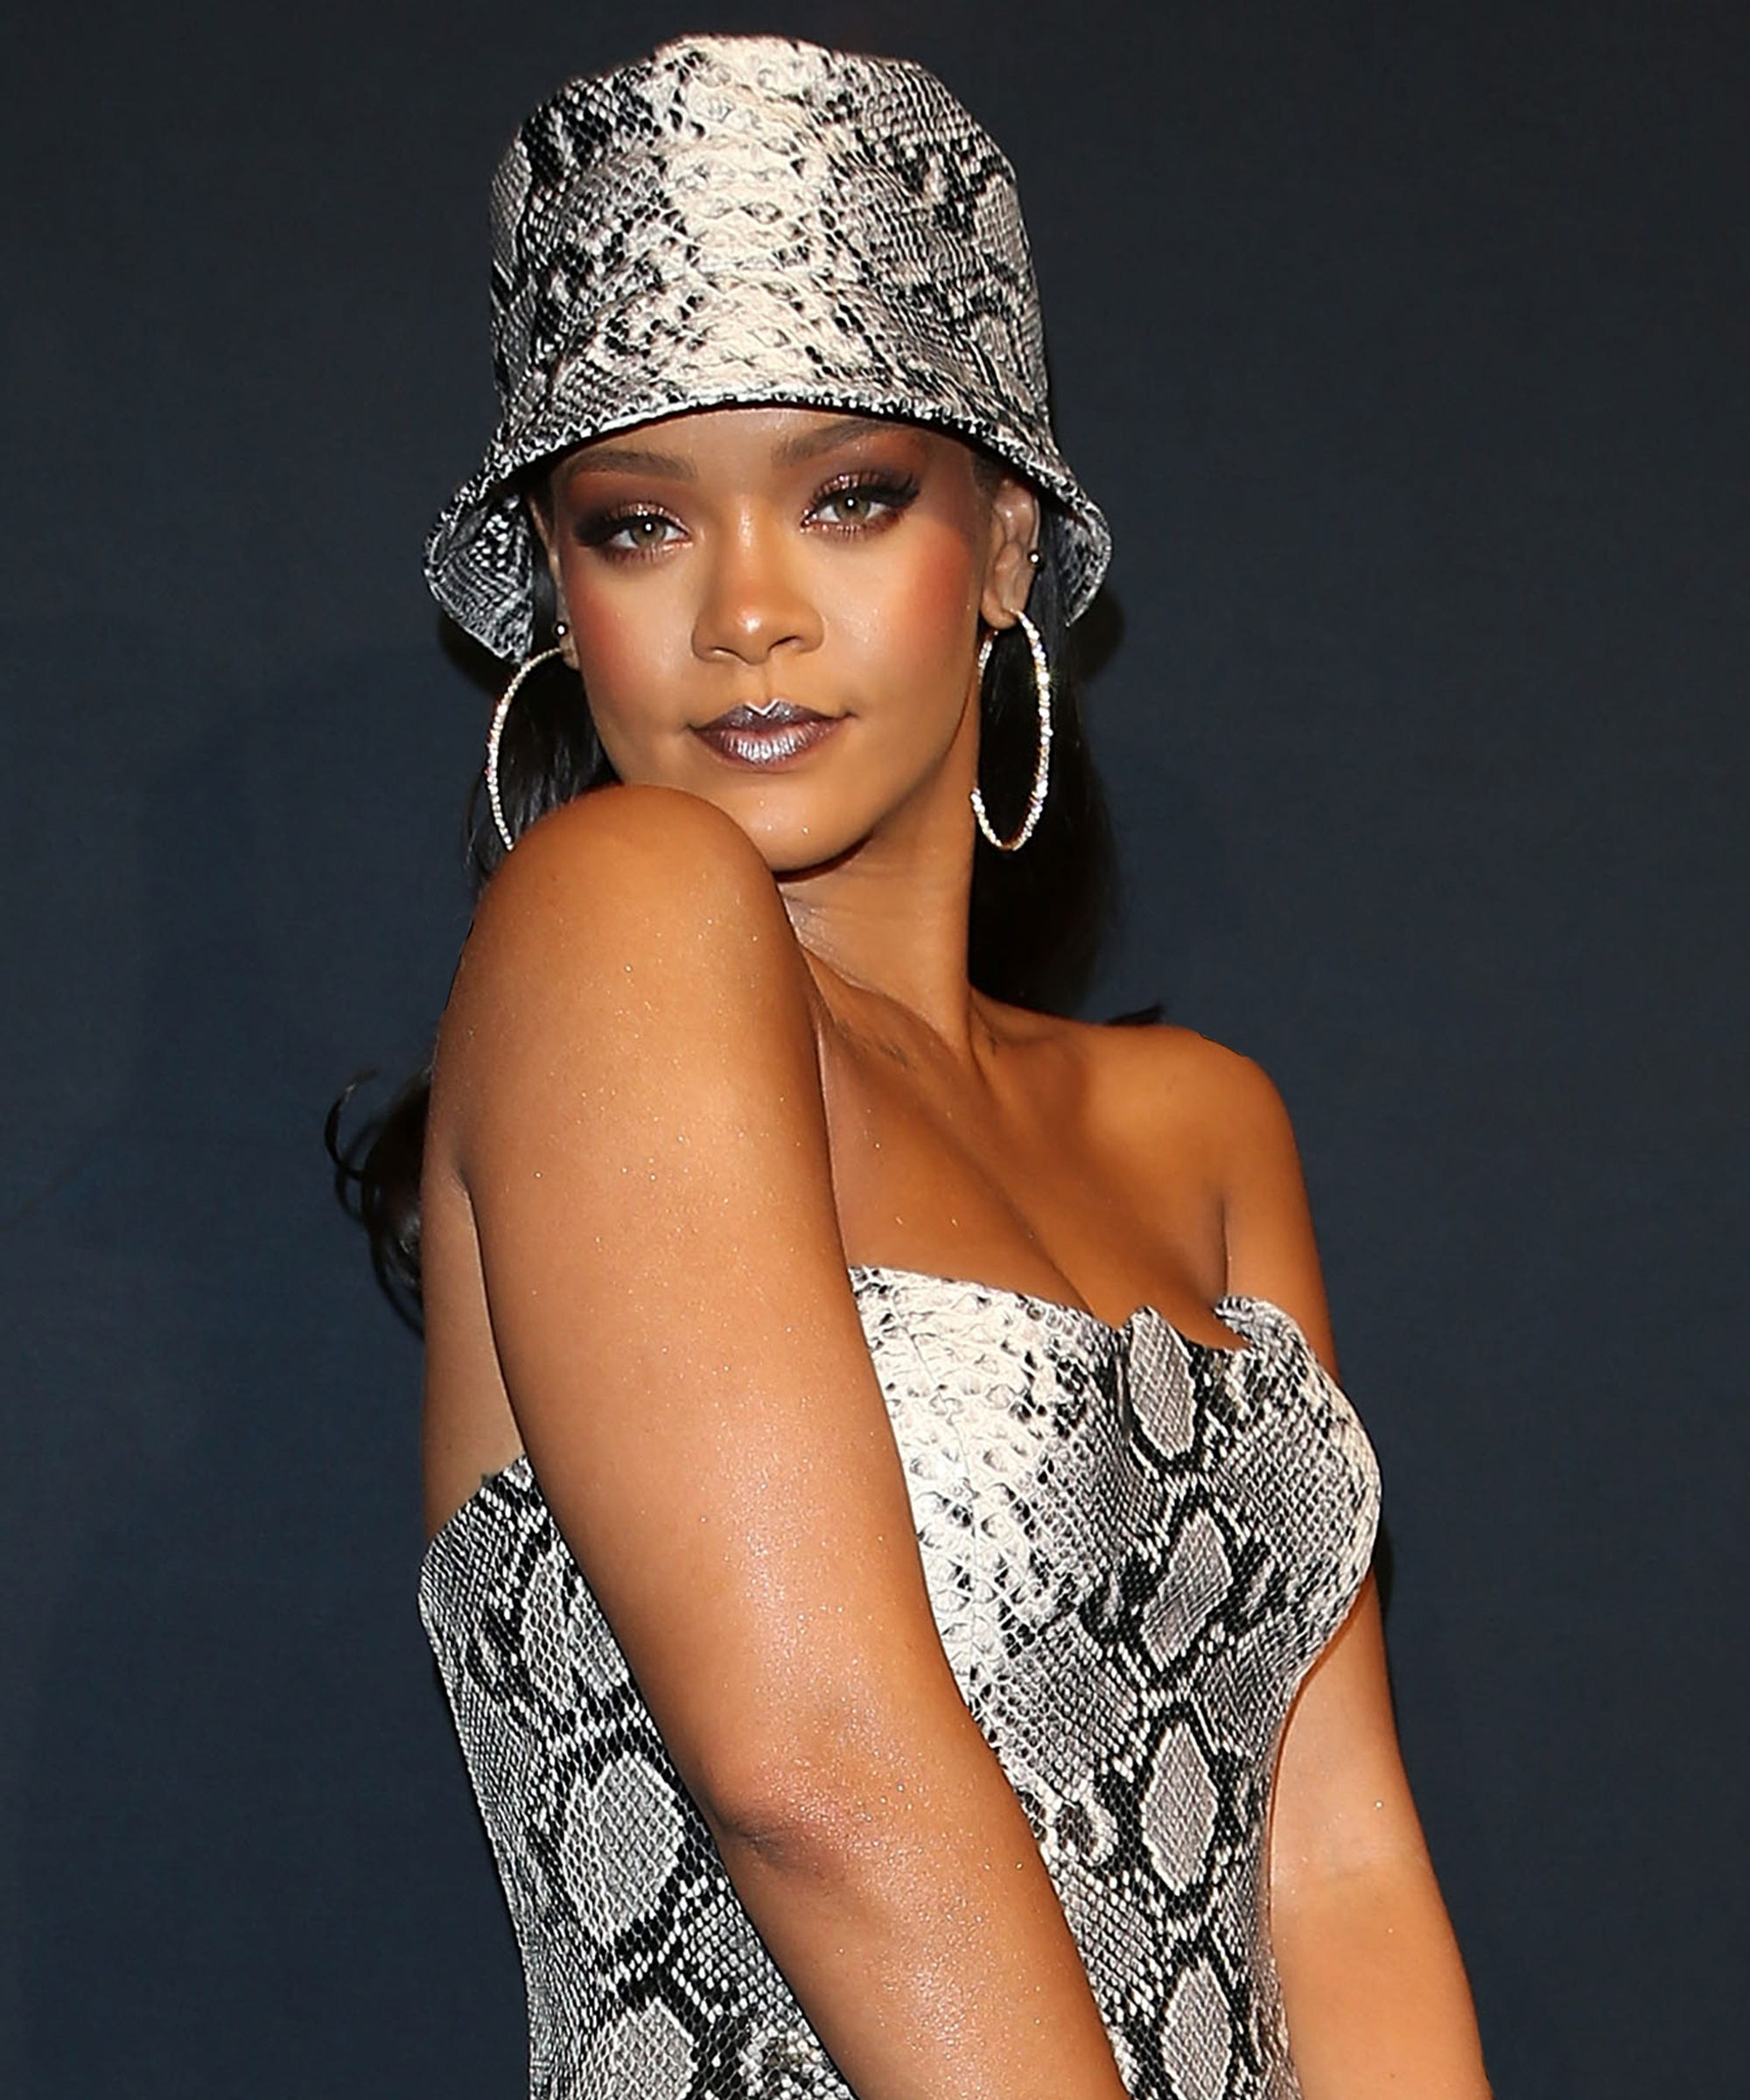 Here Is Your First Look At Rihanna's Fenty Clothing Line